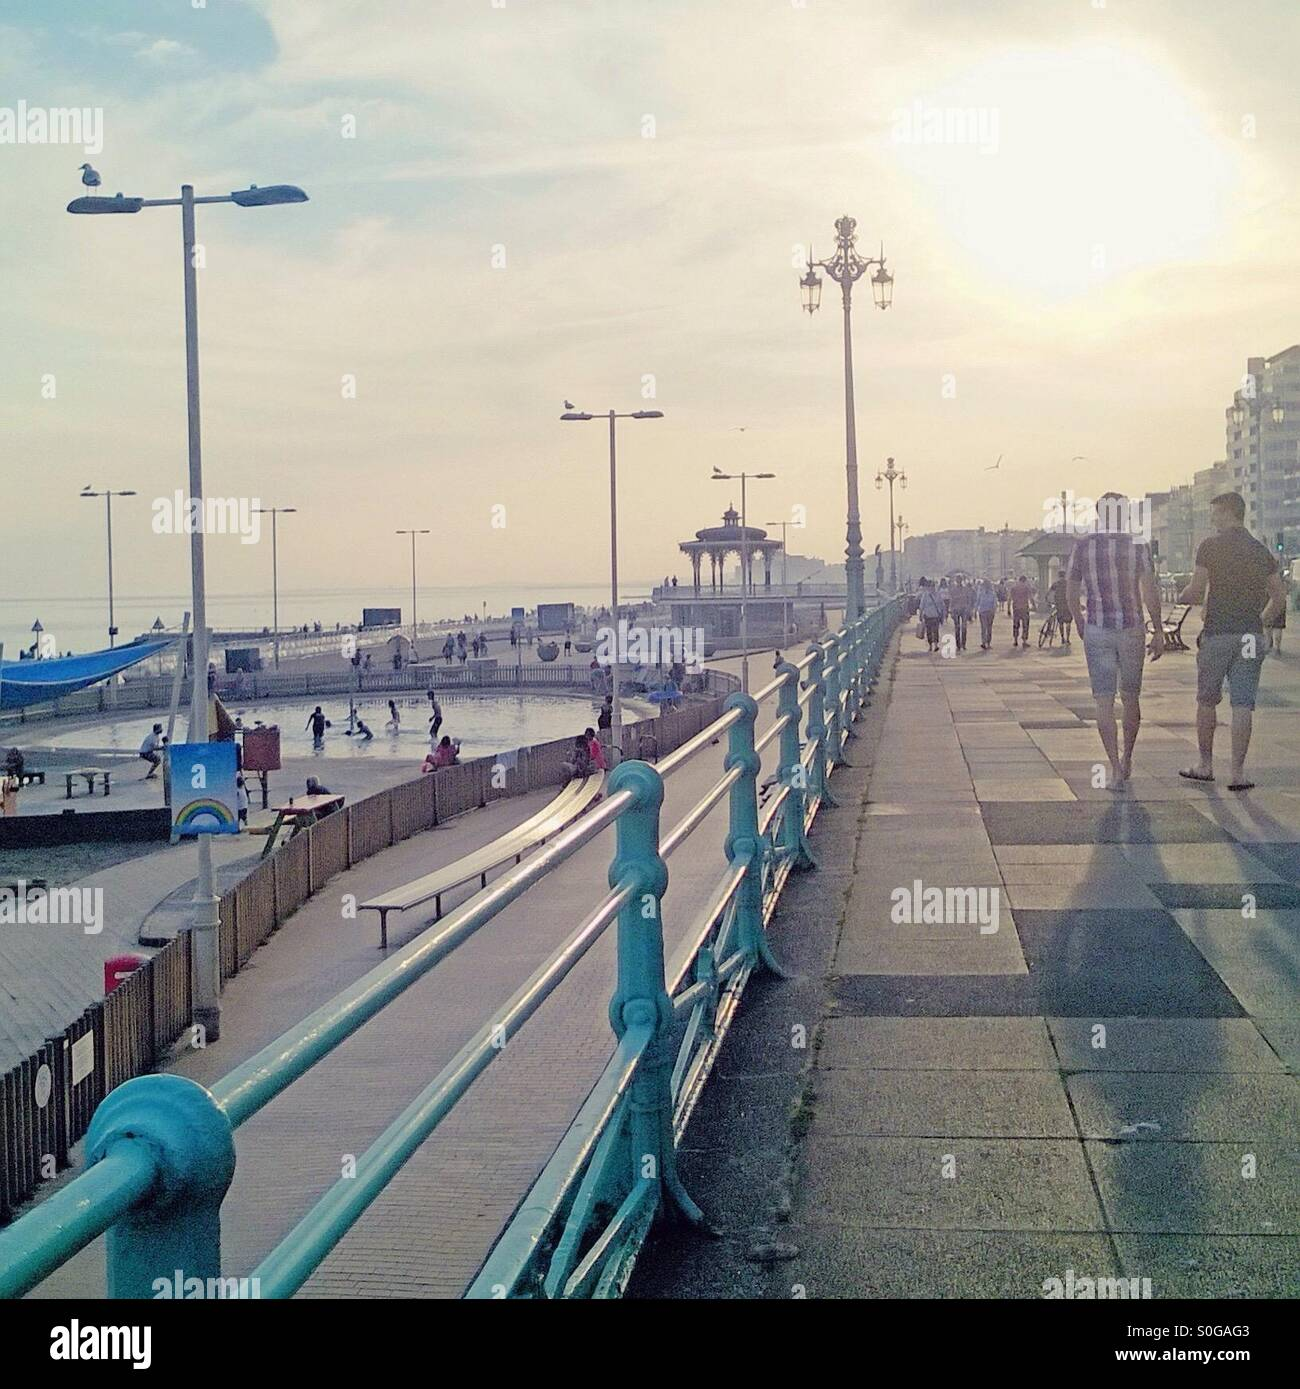 Brighton seafront promenade on Wednesday 1 July 2015, the hottest July day recorded in the UK. Stock Photo